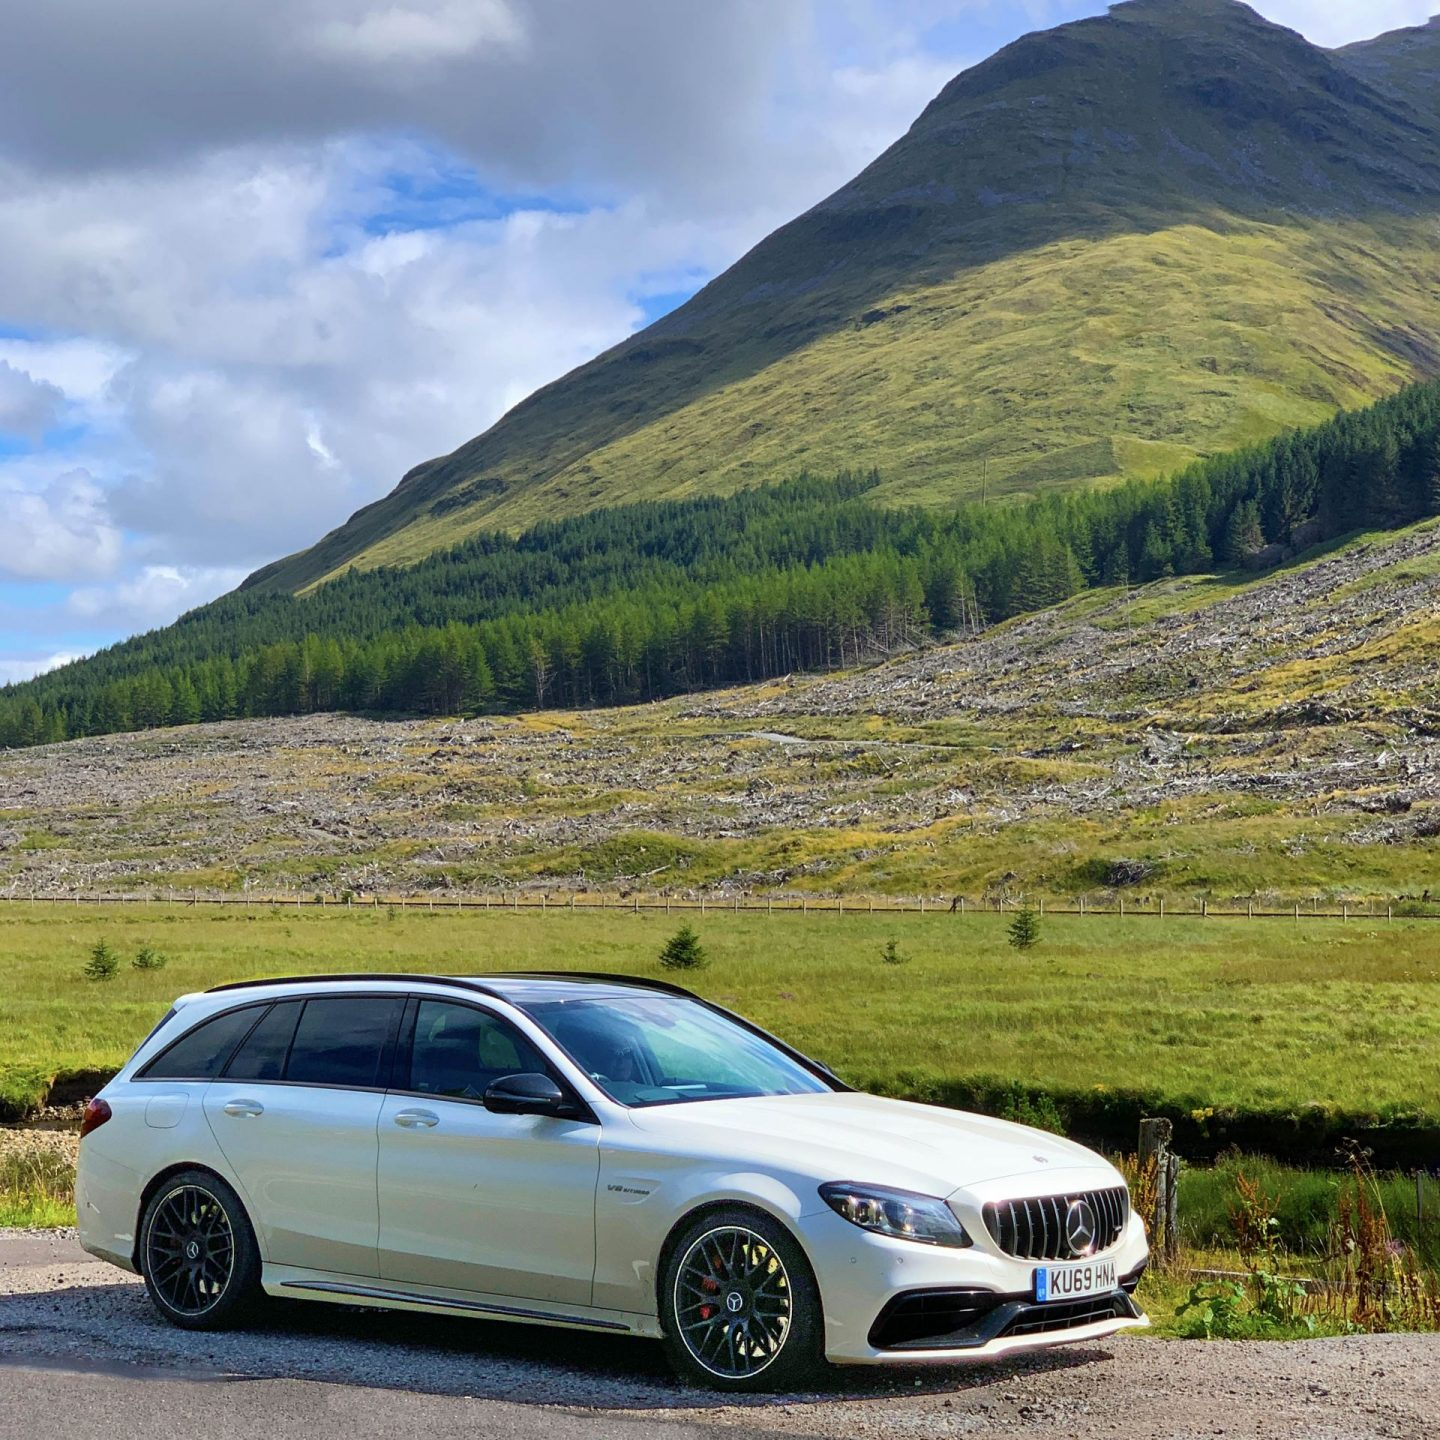 A Mercedes-AMG C 63 parked at the side of the road in Scotland.